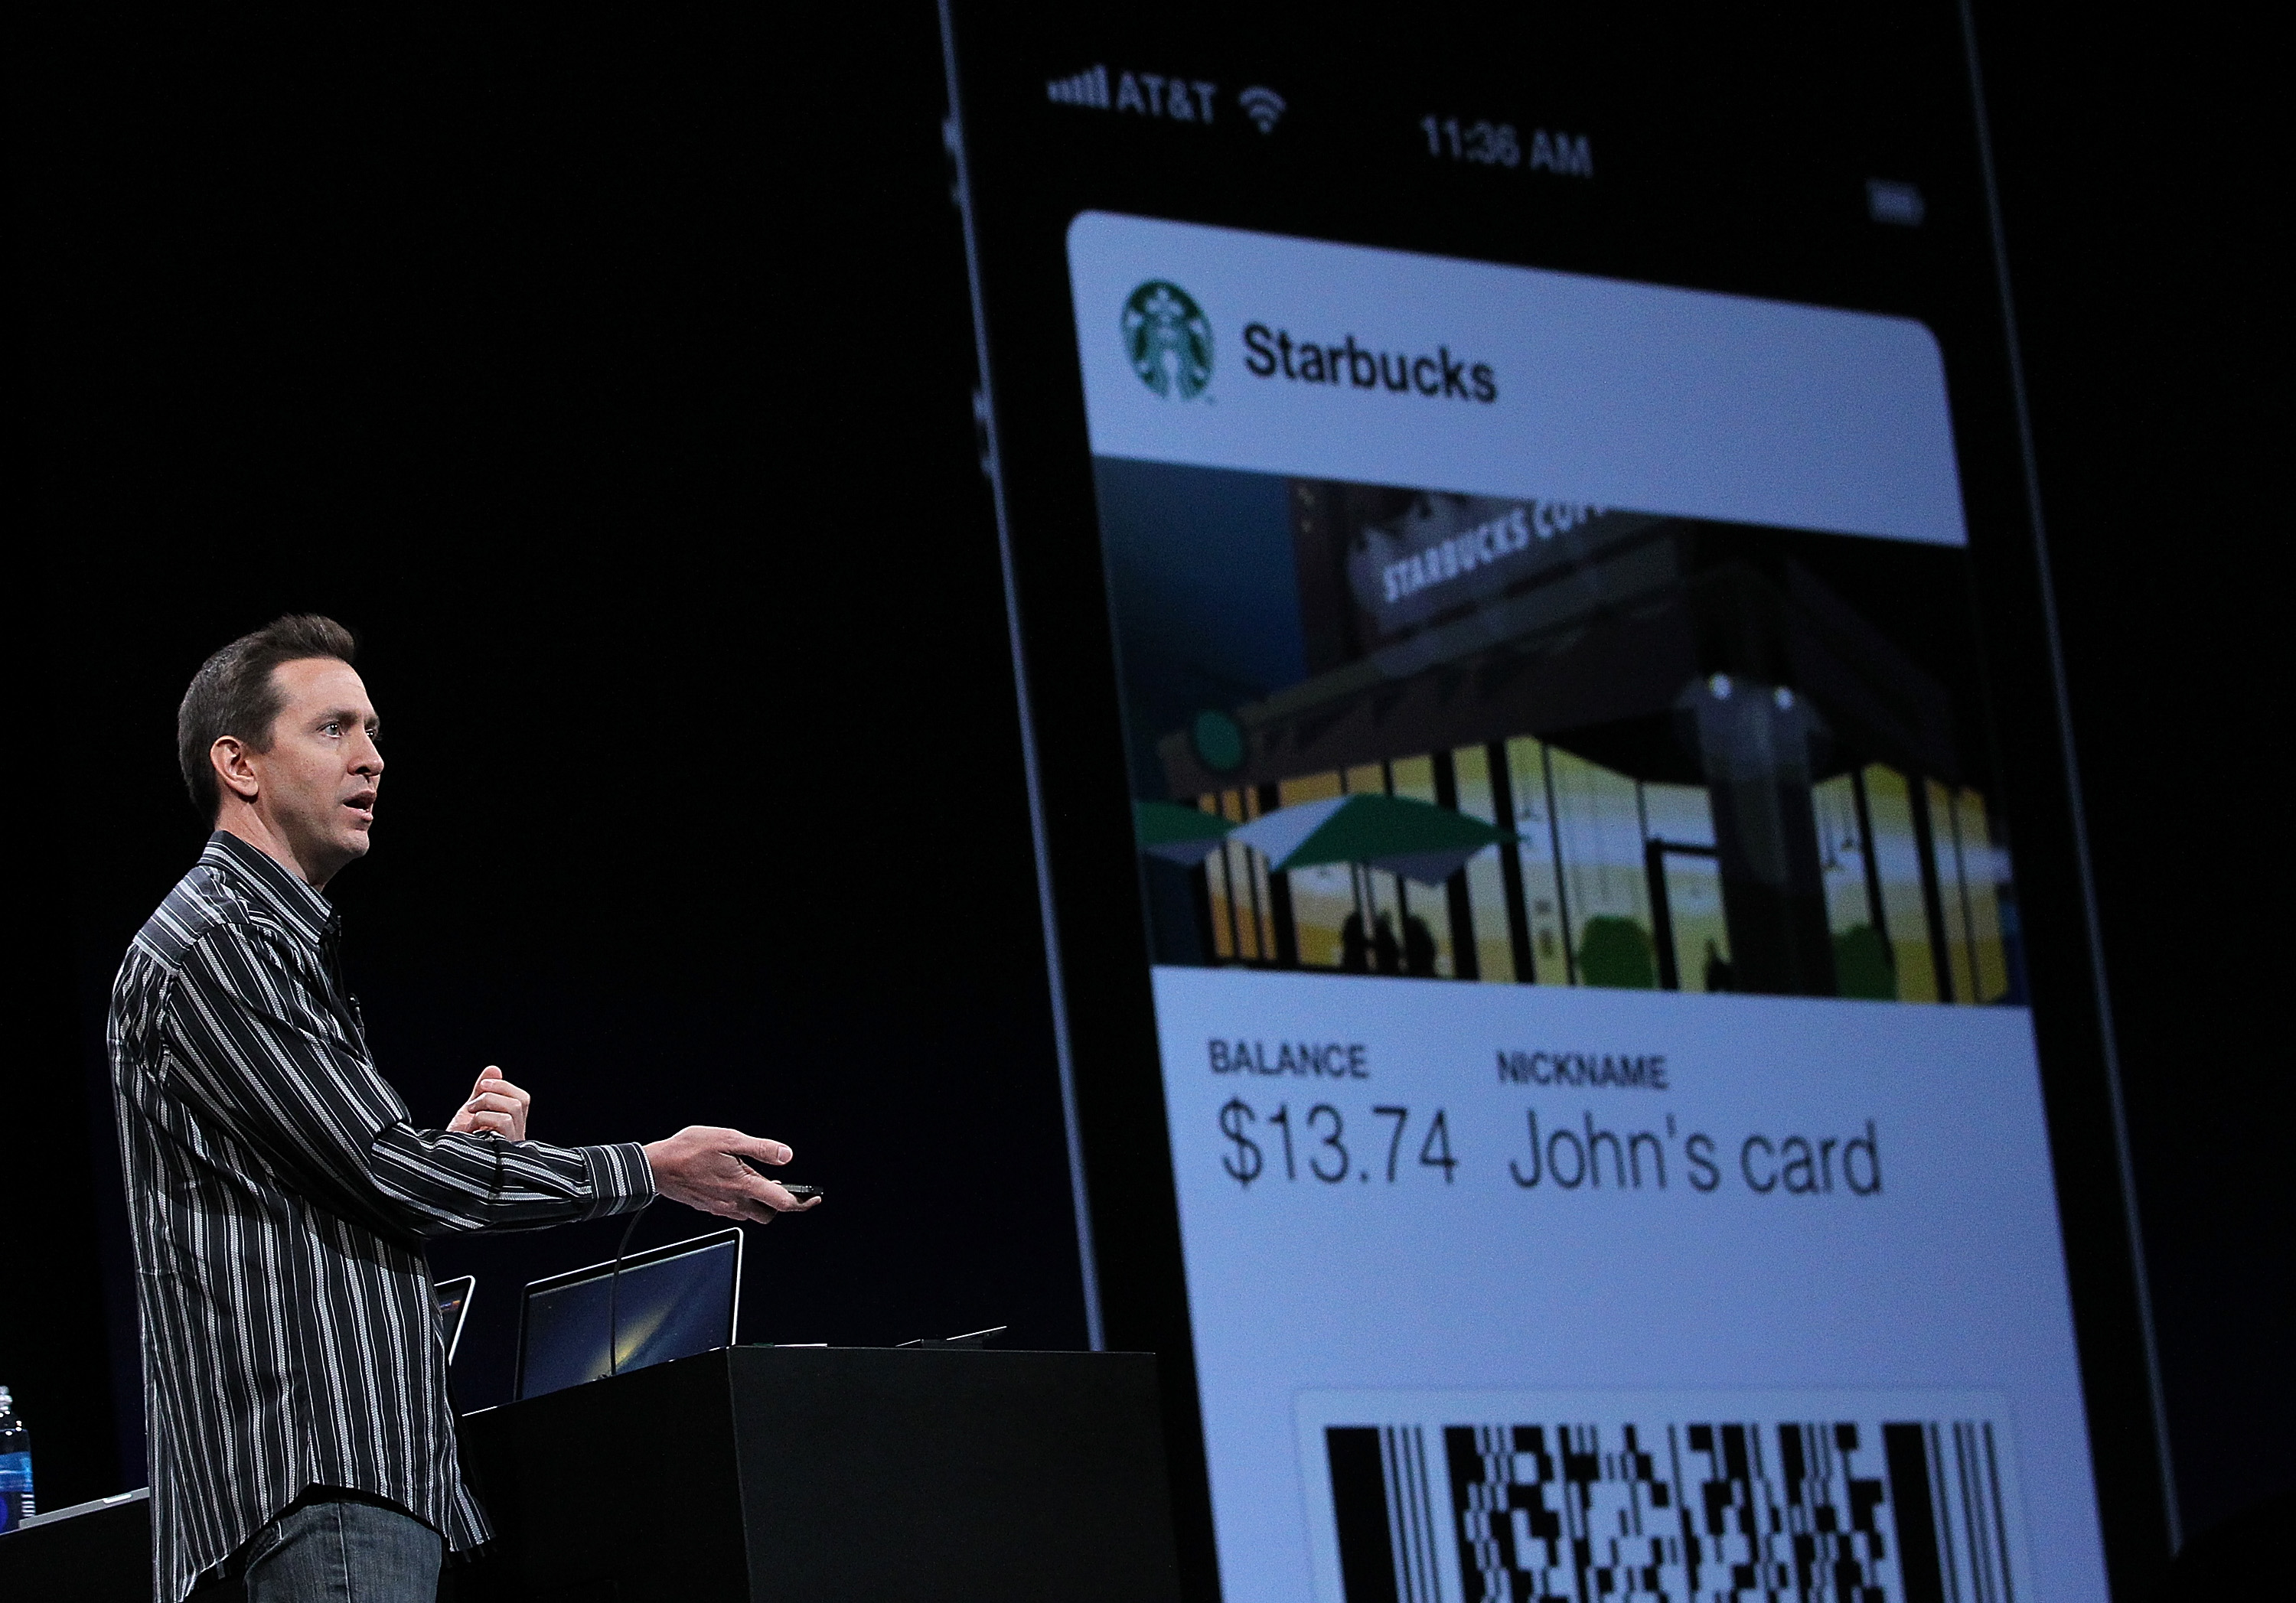 For Apple's Passbook, integration is the weakest link